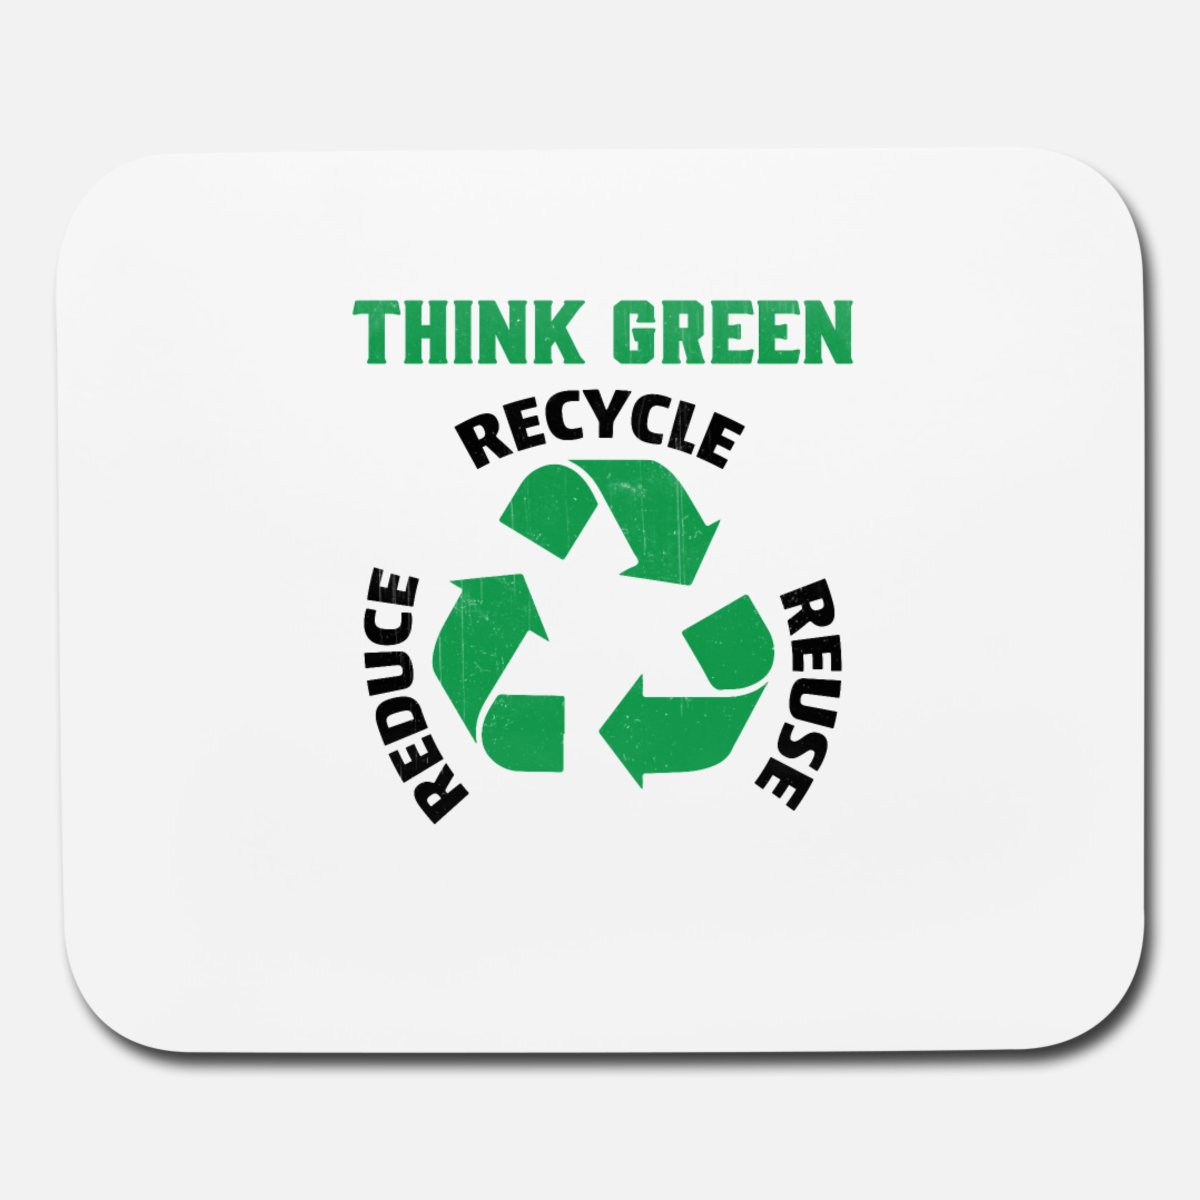 recycle-mouse-pads-3